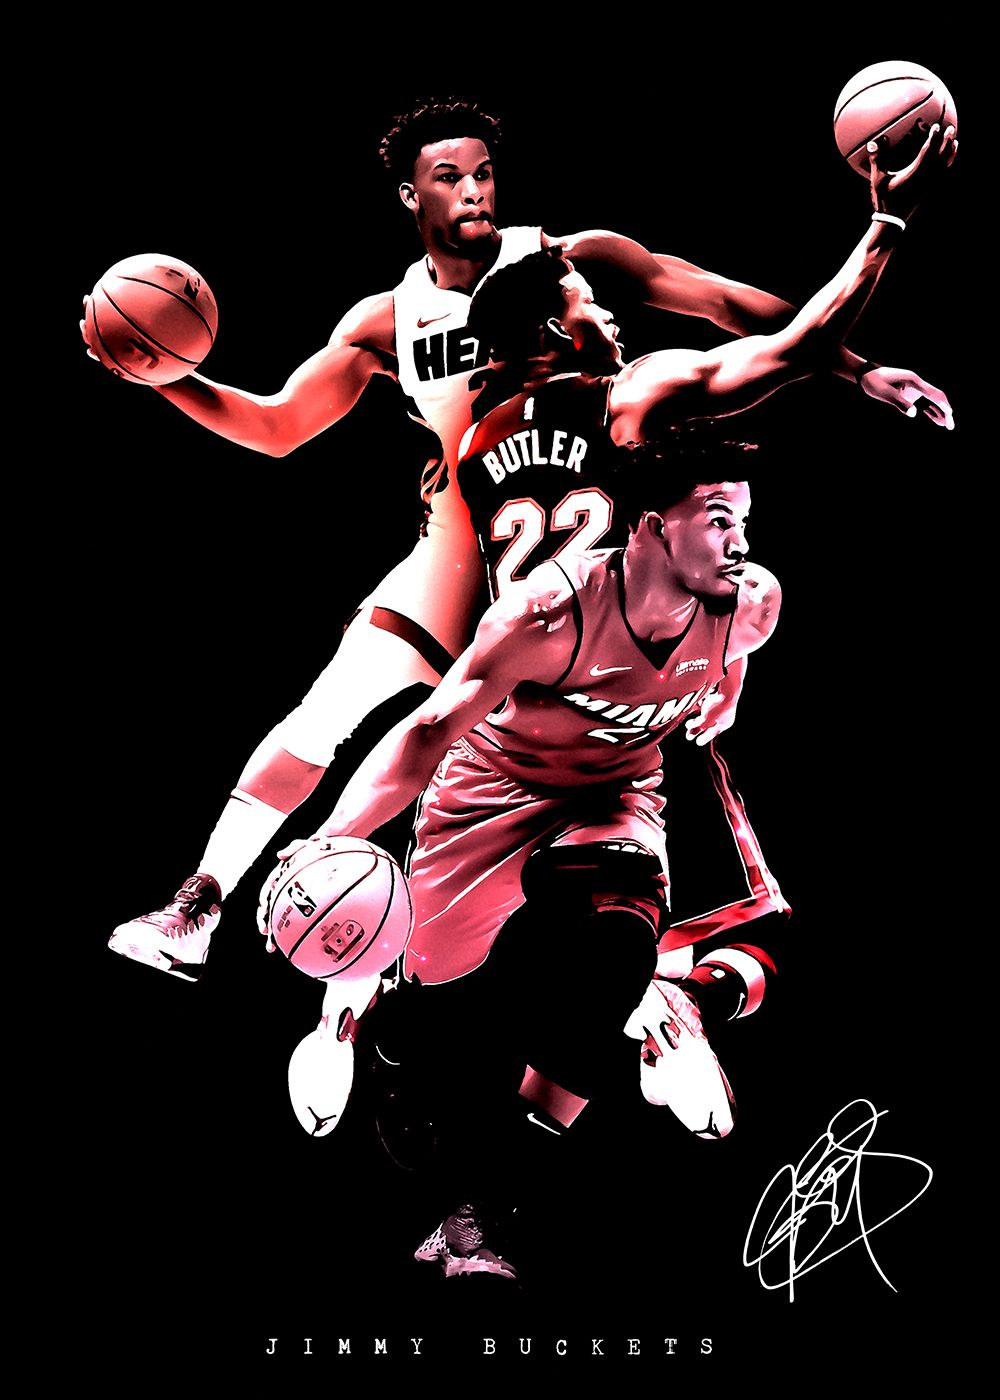 Nba Jimmy Butler Buckets Metal Poster Team Awesome Displate In 2020 Butler Jimmy Miami Heat Sports Graphic Design